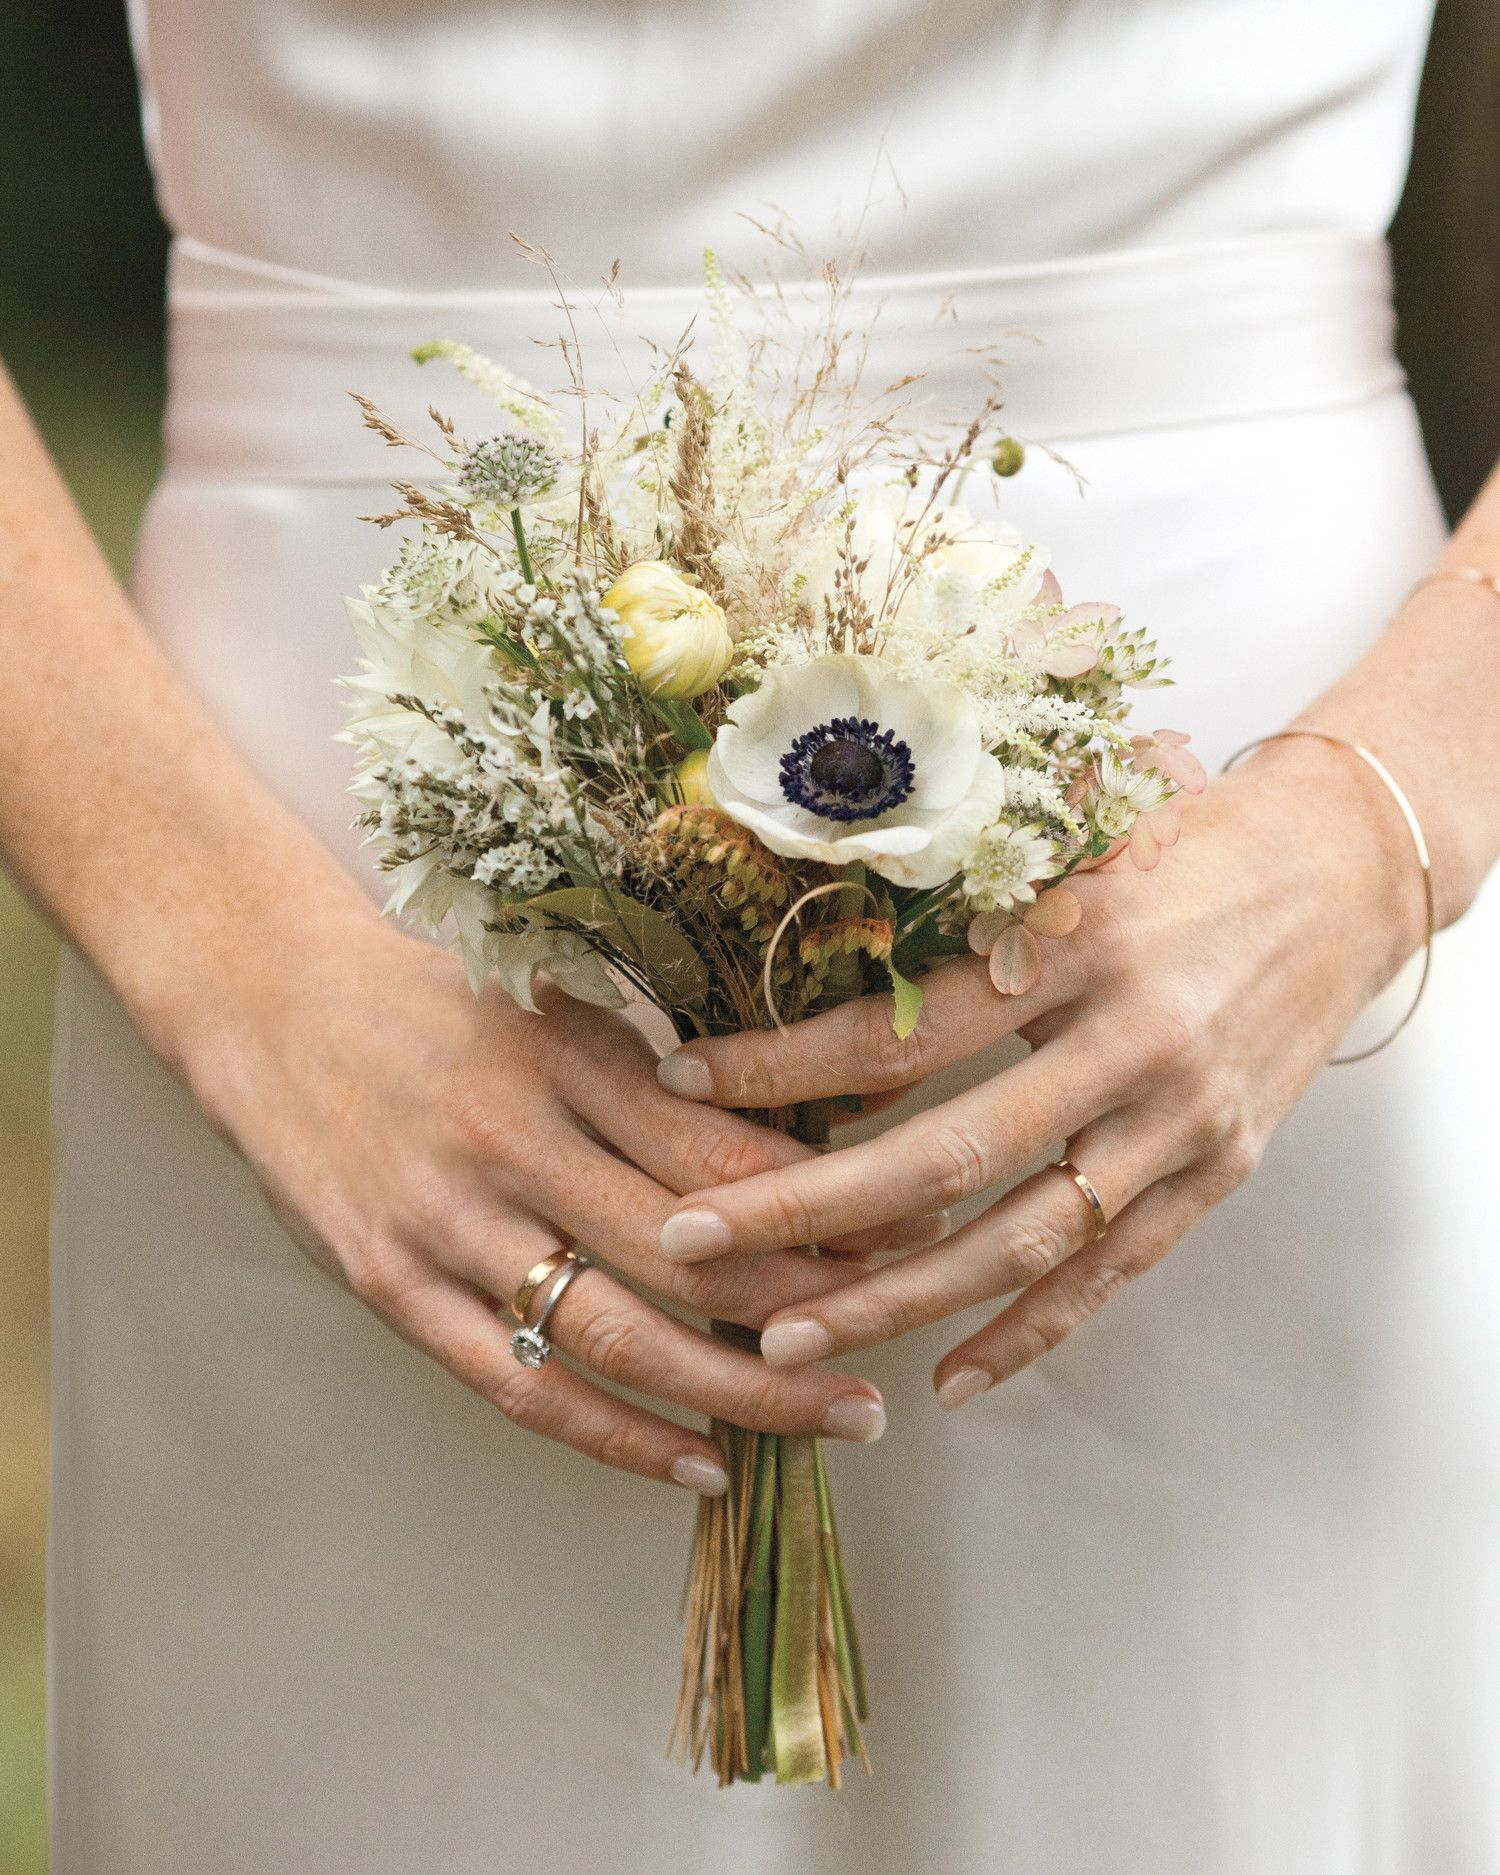 52 Gorgeous Fall Wedding Bouquets Small Wedding Bouquets Simple Bridal Bouquets Small Bridal Bouquets